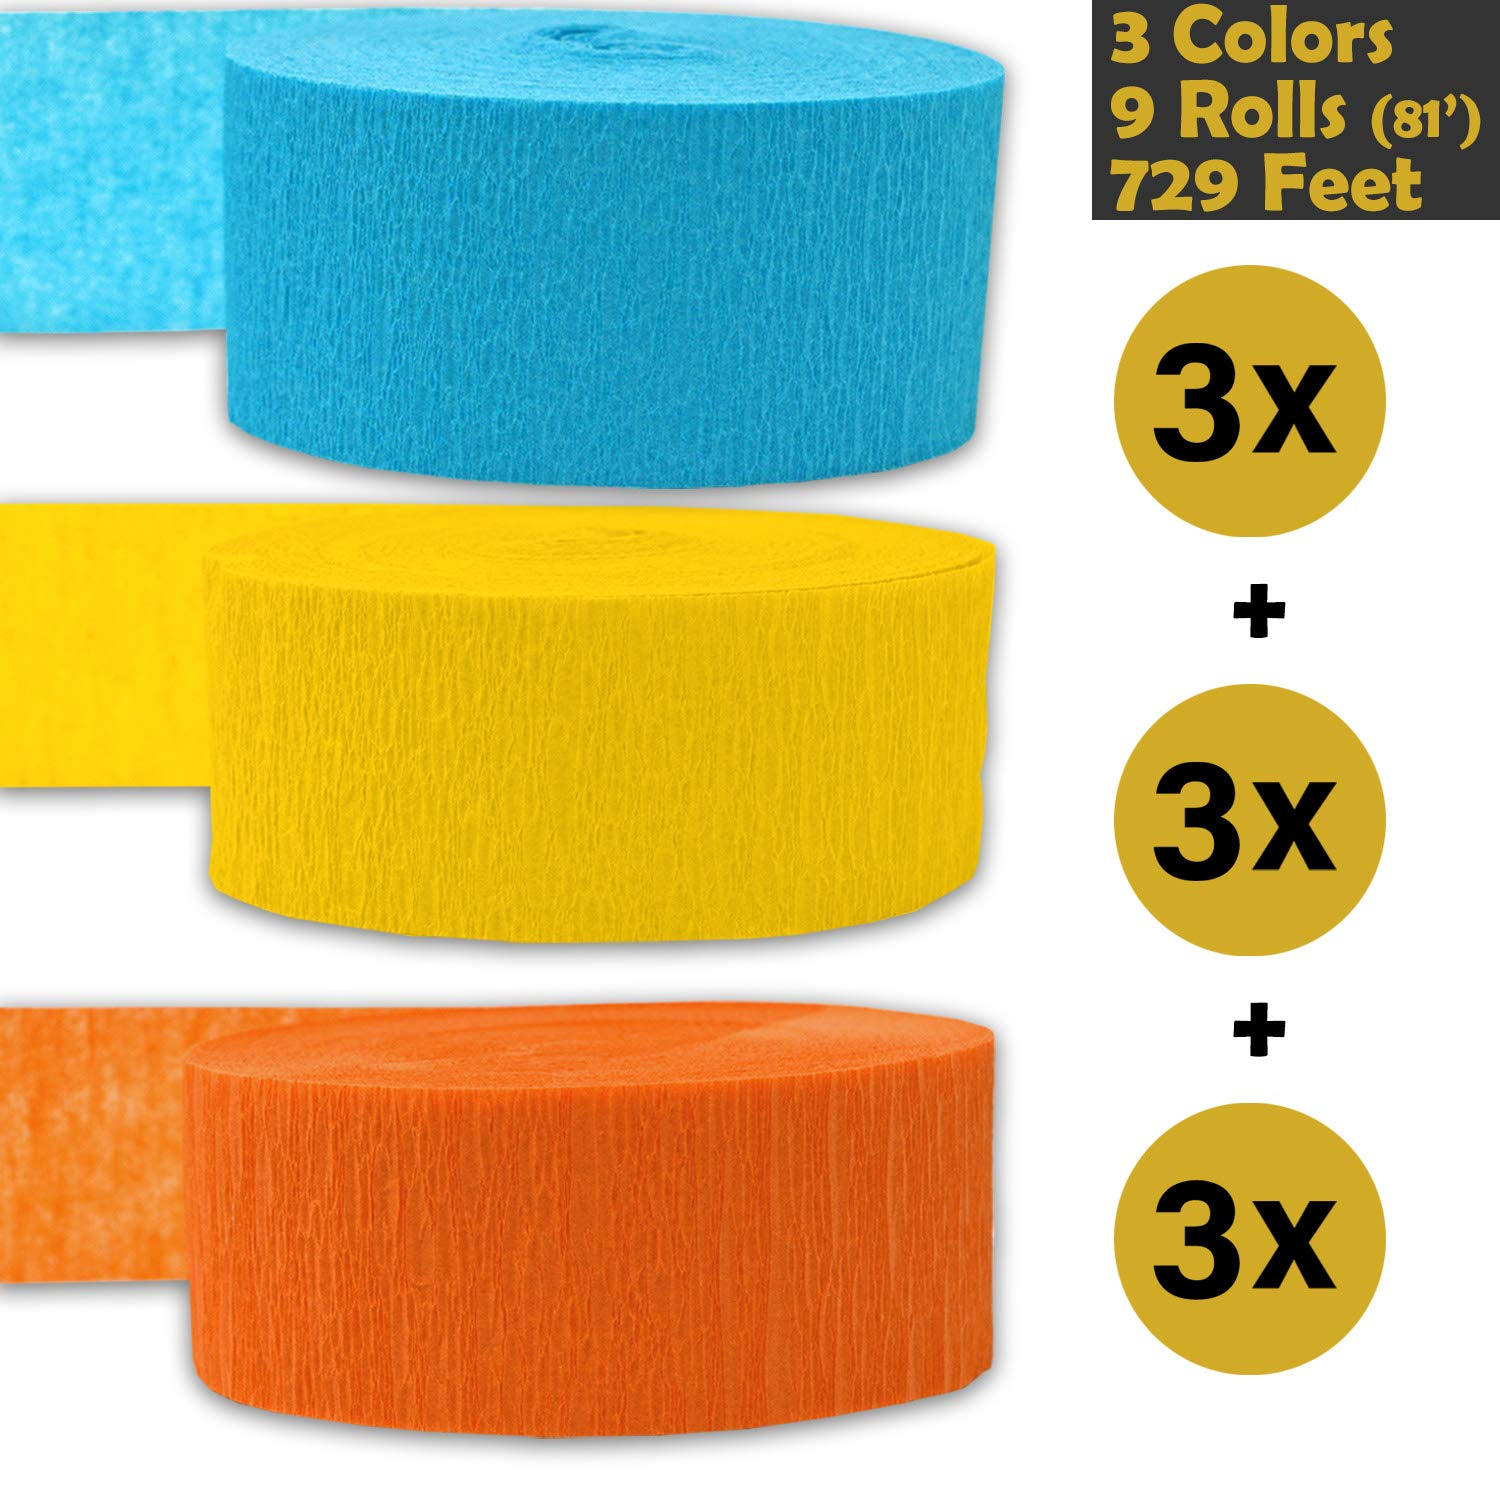 Sapphire Blue 739 ft Crepe Party Streamers 3 rolls per color, 81 foot each roll - For party Decorations and Crafts Turquoise 9 rolls Bleed Resistant Made in USA Flame Resistant 243 per color 3 Colors Seafoam Green